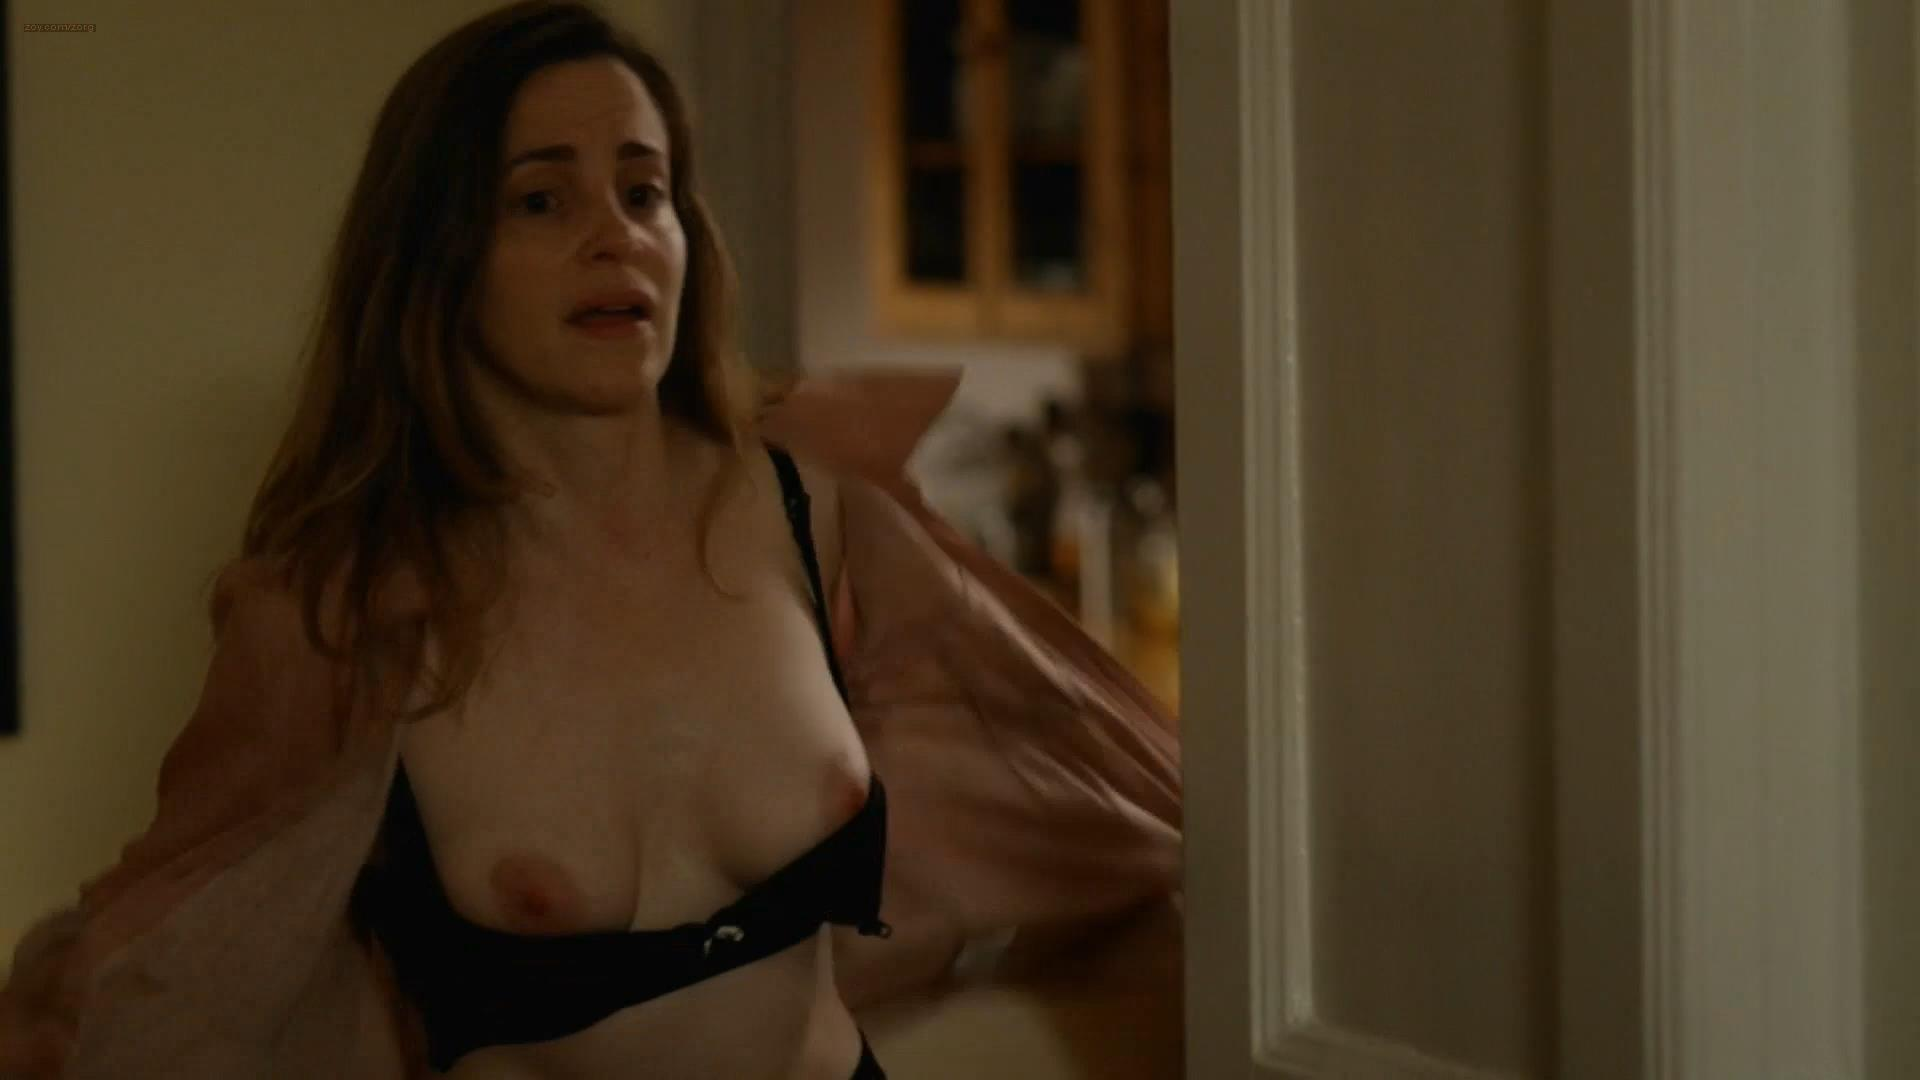 Lucy walters sex scene doggystyle amp topless power s03e04 2016 9